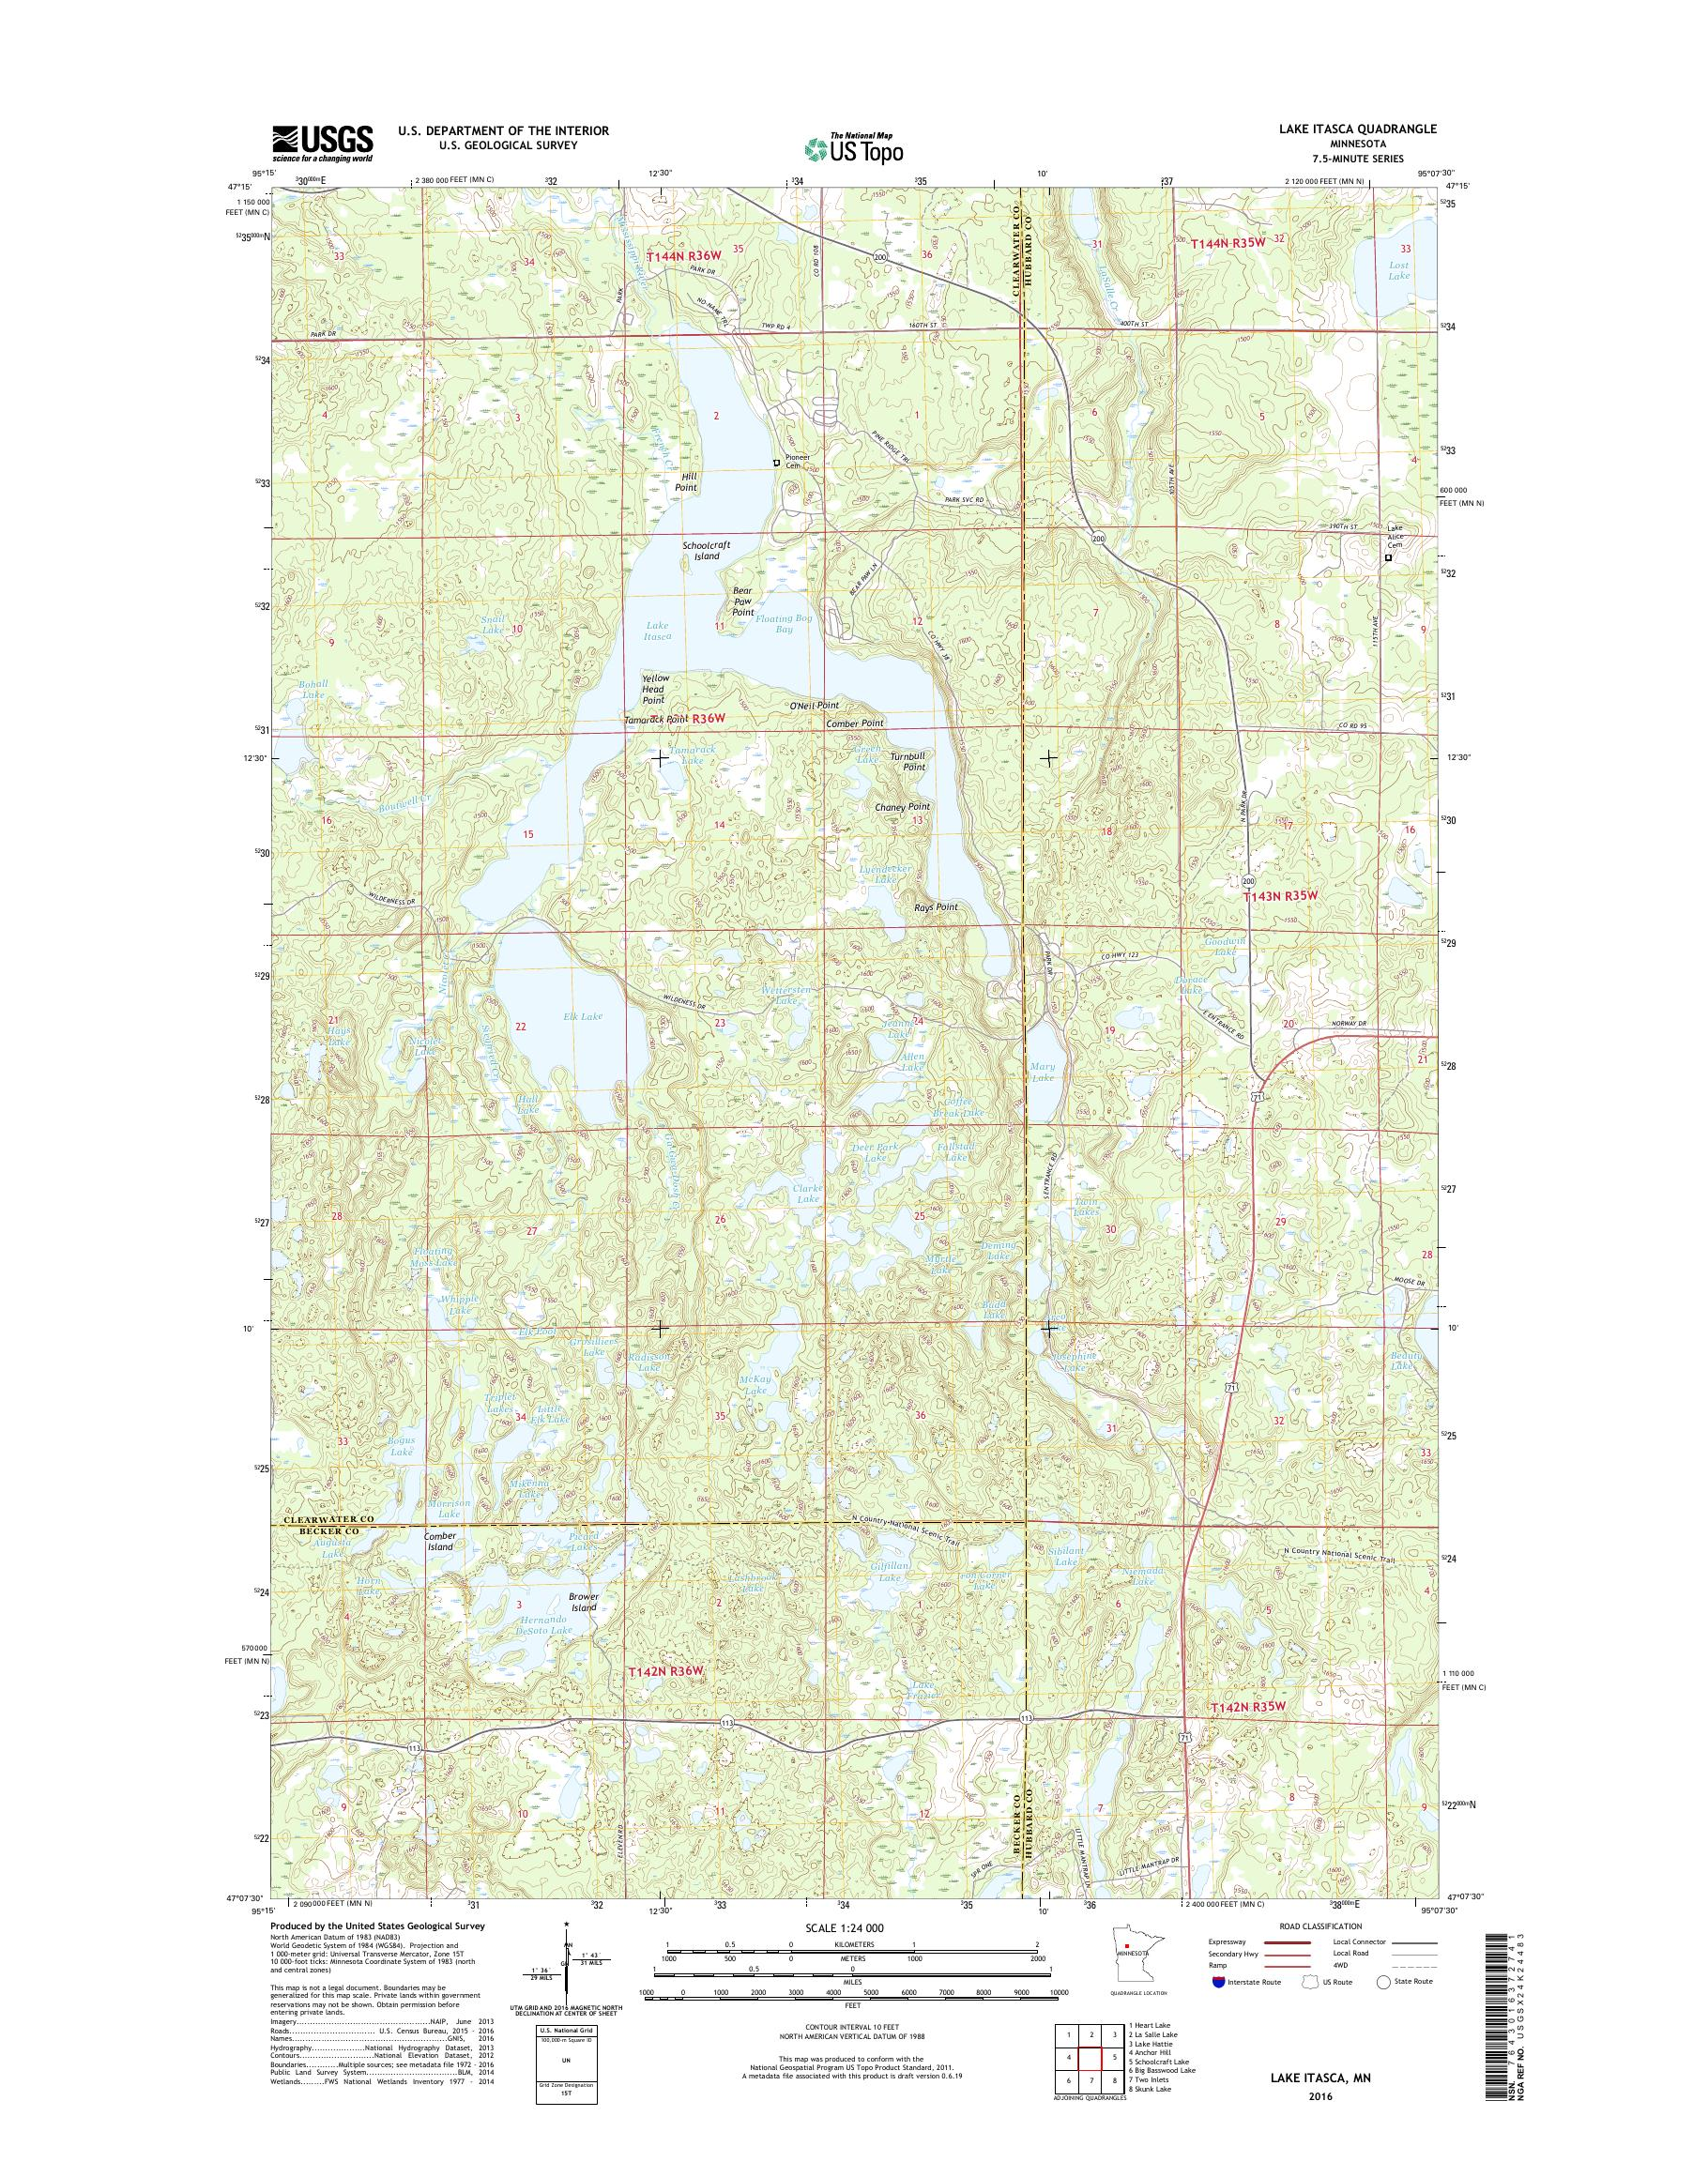 MyTopo Lake Itasca, Minnesota USGS Quad Topo Map on map of aquifers in mn, map of highways in mn, map of airports in mn, map of hospitals in mn, map of important cities in mn, map of creeks in mn, map of restaurants in mn, map of forests in mn, map of townships in mn, map of indian reservations in mn, map of school districts in mn, map of farmland in mn, map of agriculture in mn, map of zip codes in mn, map of roads in mn, map of state land in mn, map of railroads in mn, map of waterfalls in mn, map of prairies in mn, map of golf courses in mn,